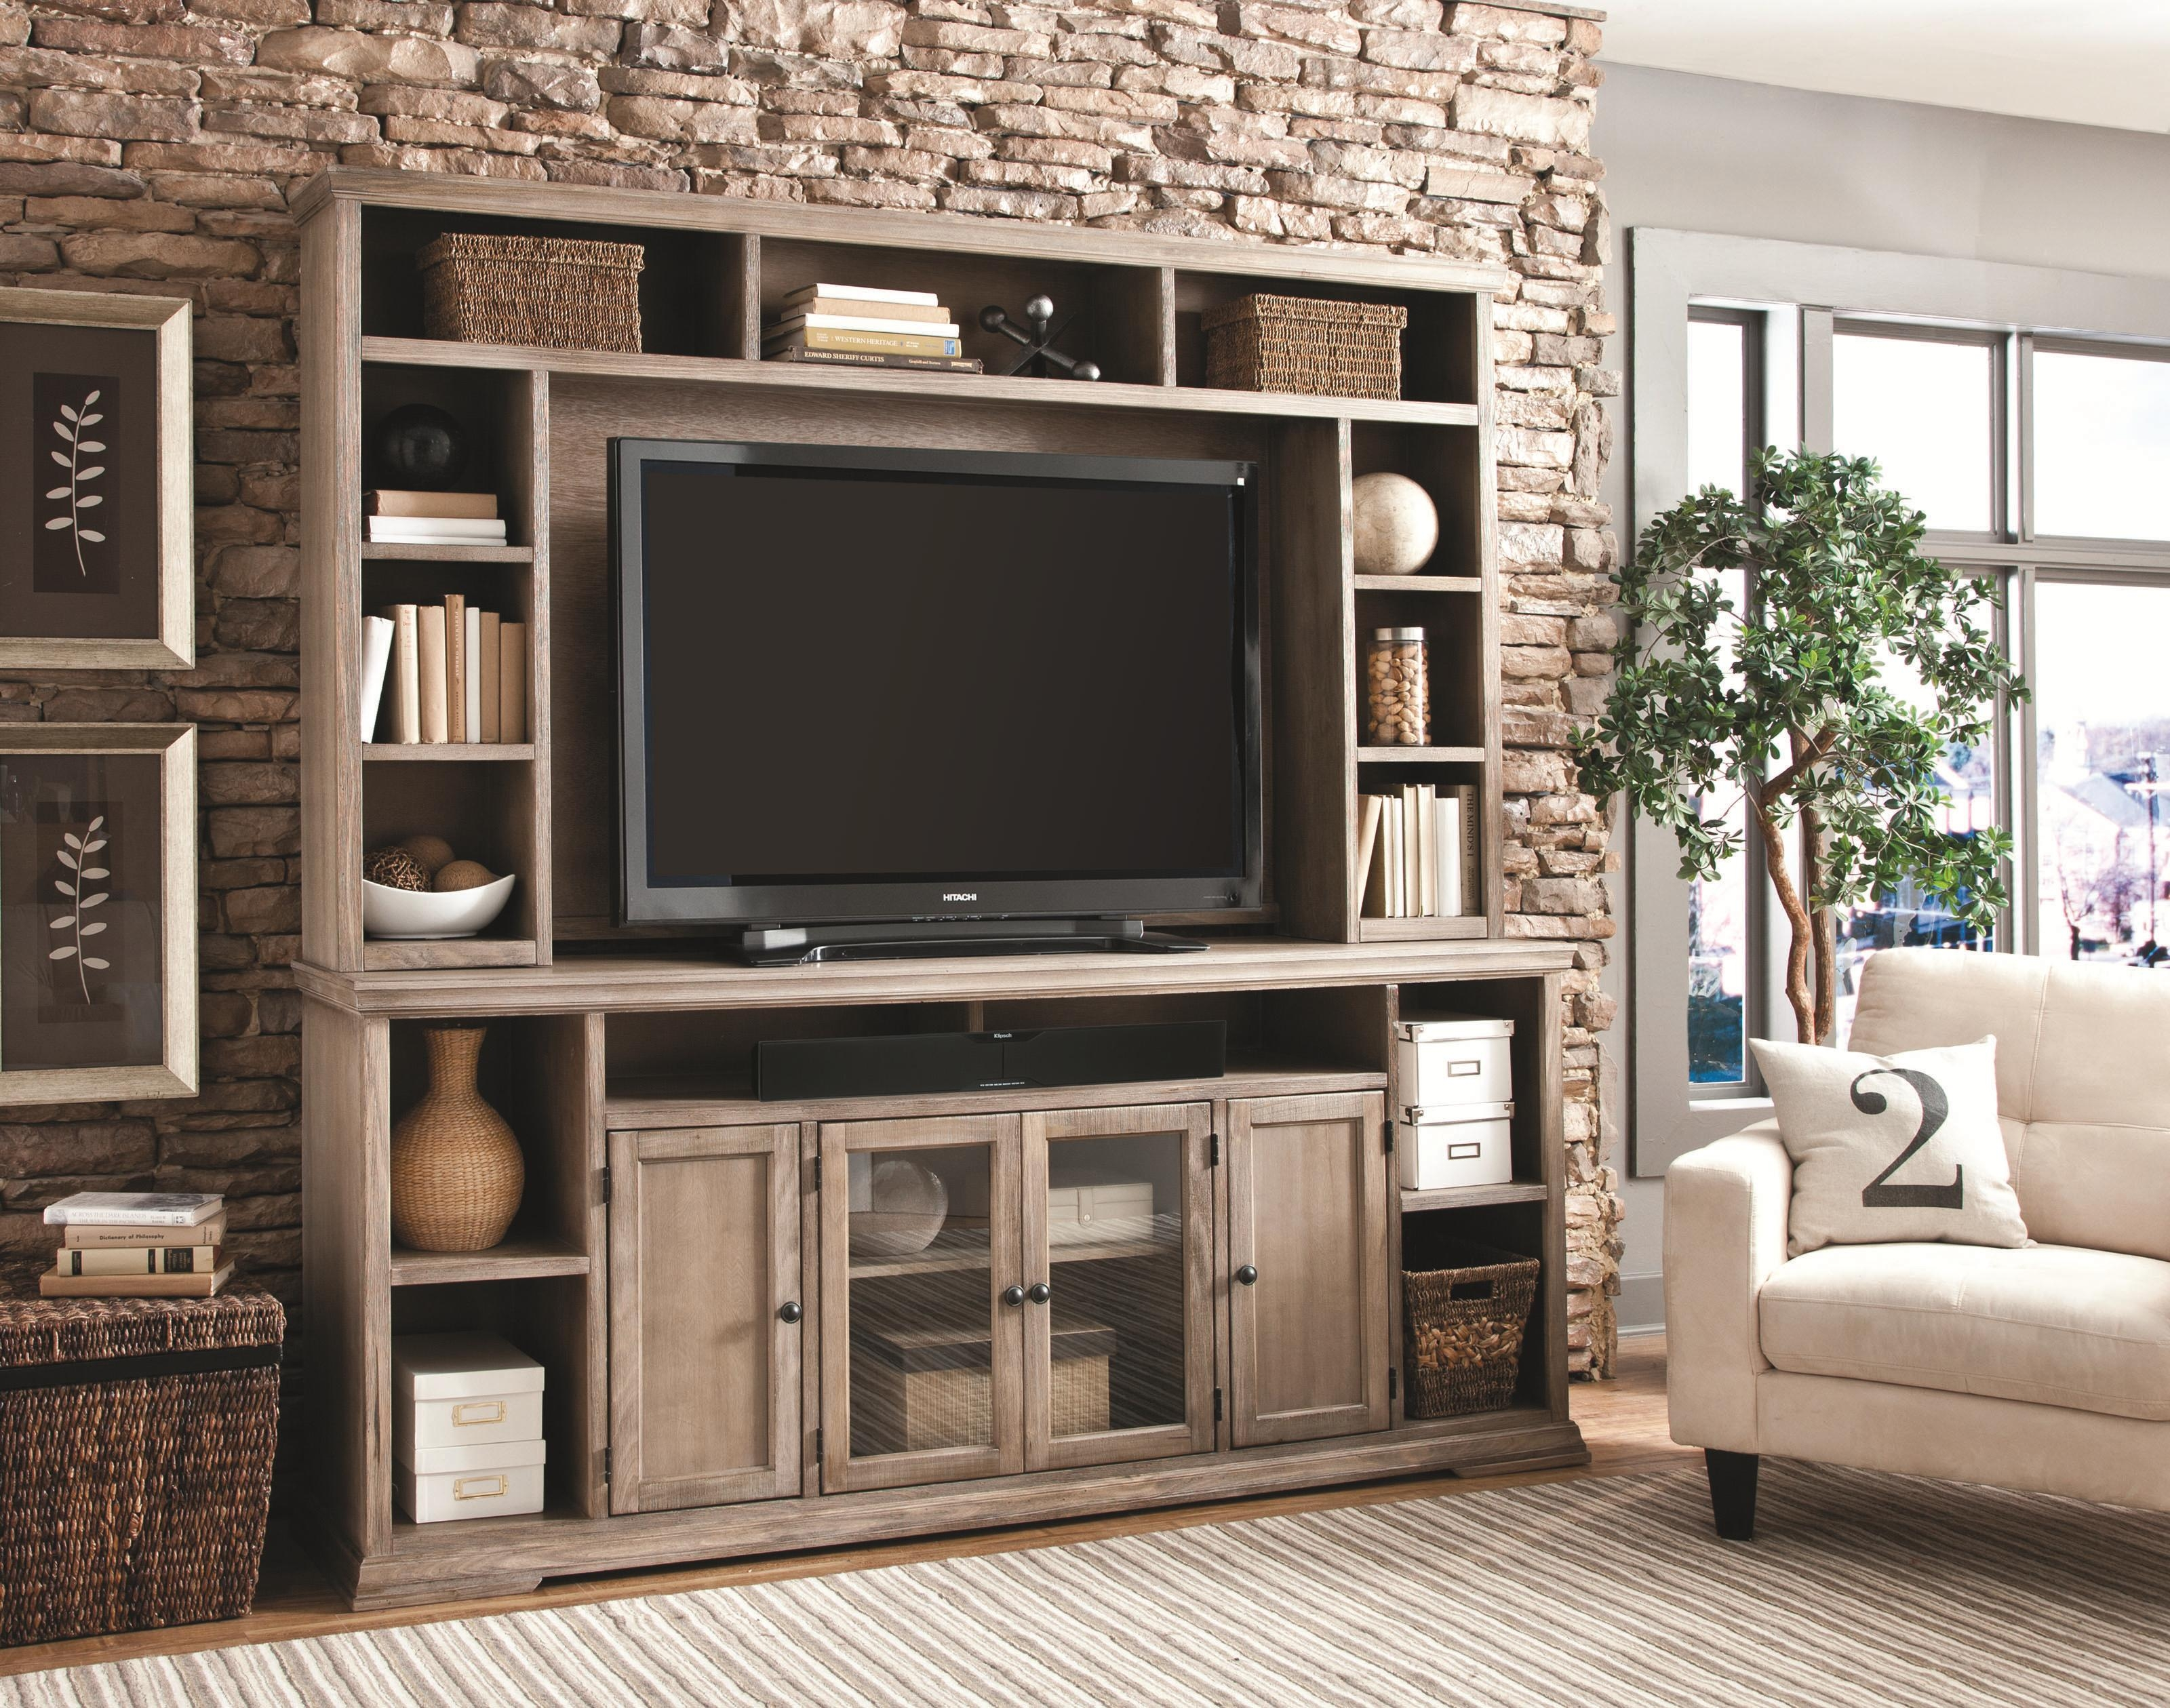 Tv Stands Astounding Entertainment Center With Bookcases 2017 With Tv And Bookshelf (View 10 of 15)